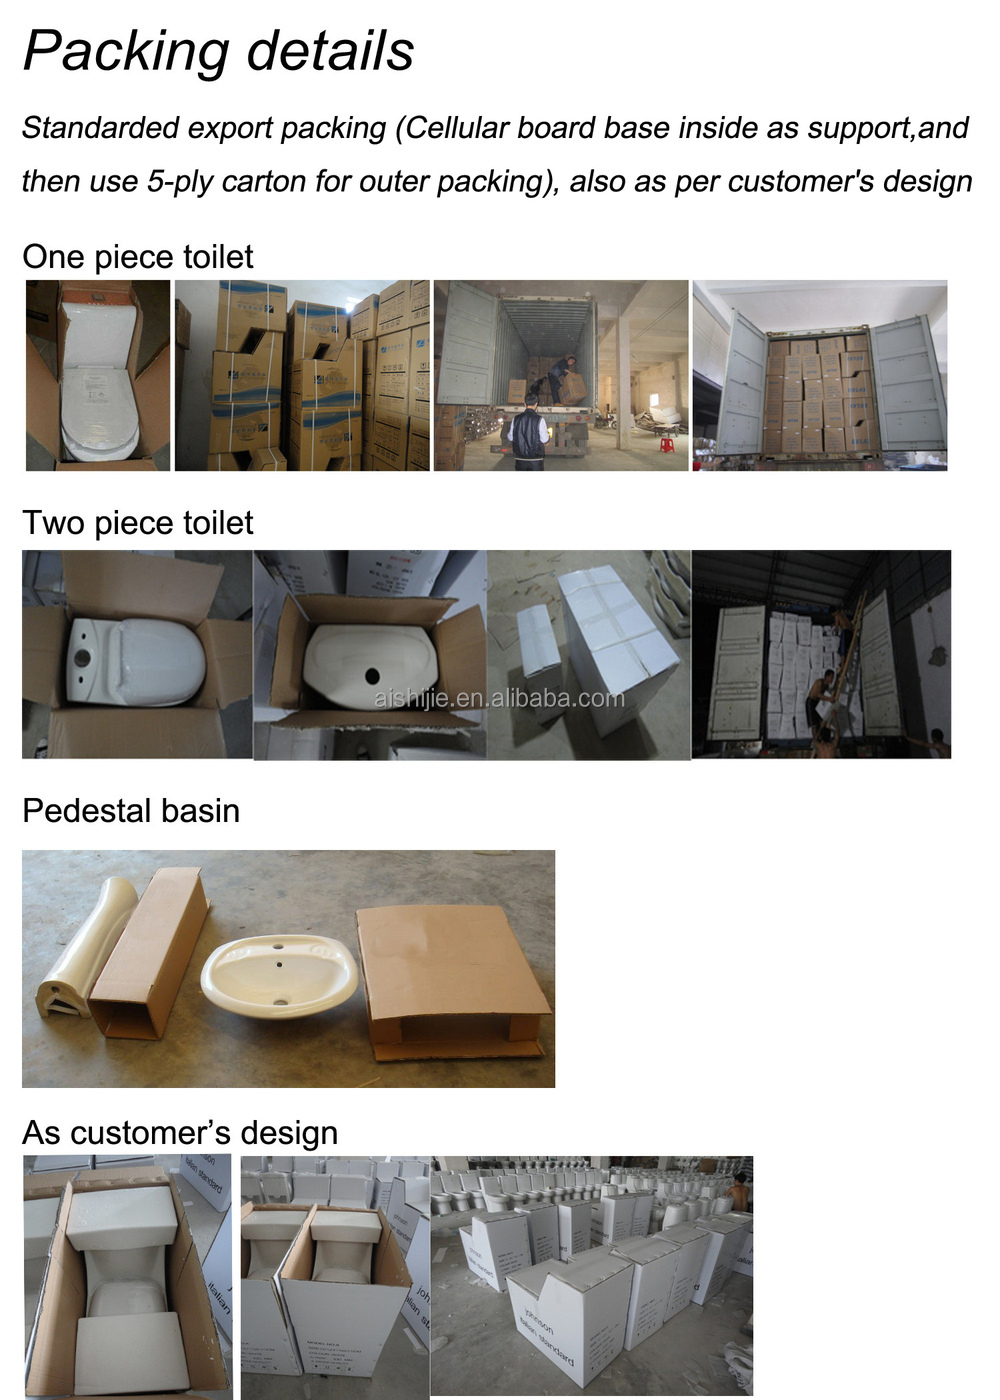 A3104 Bathroom Siphonic Types Of Toilet Bowl One Piece